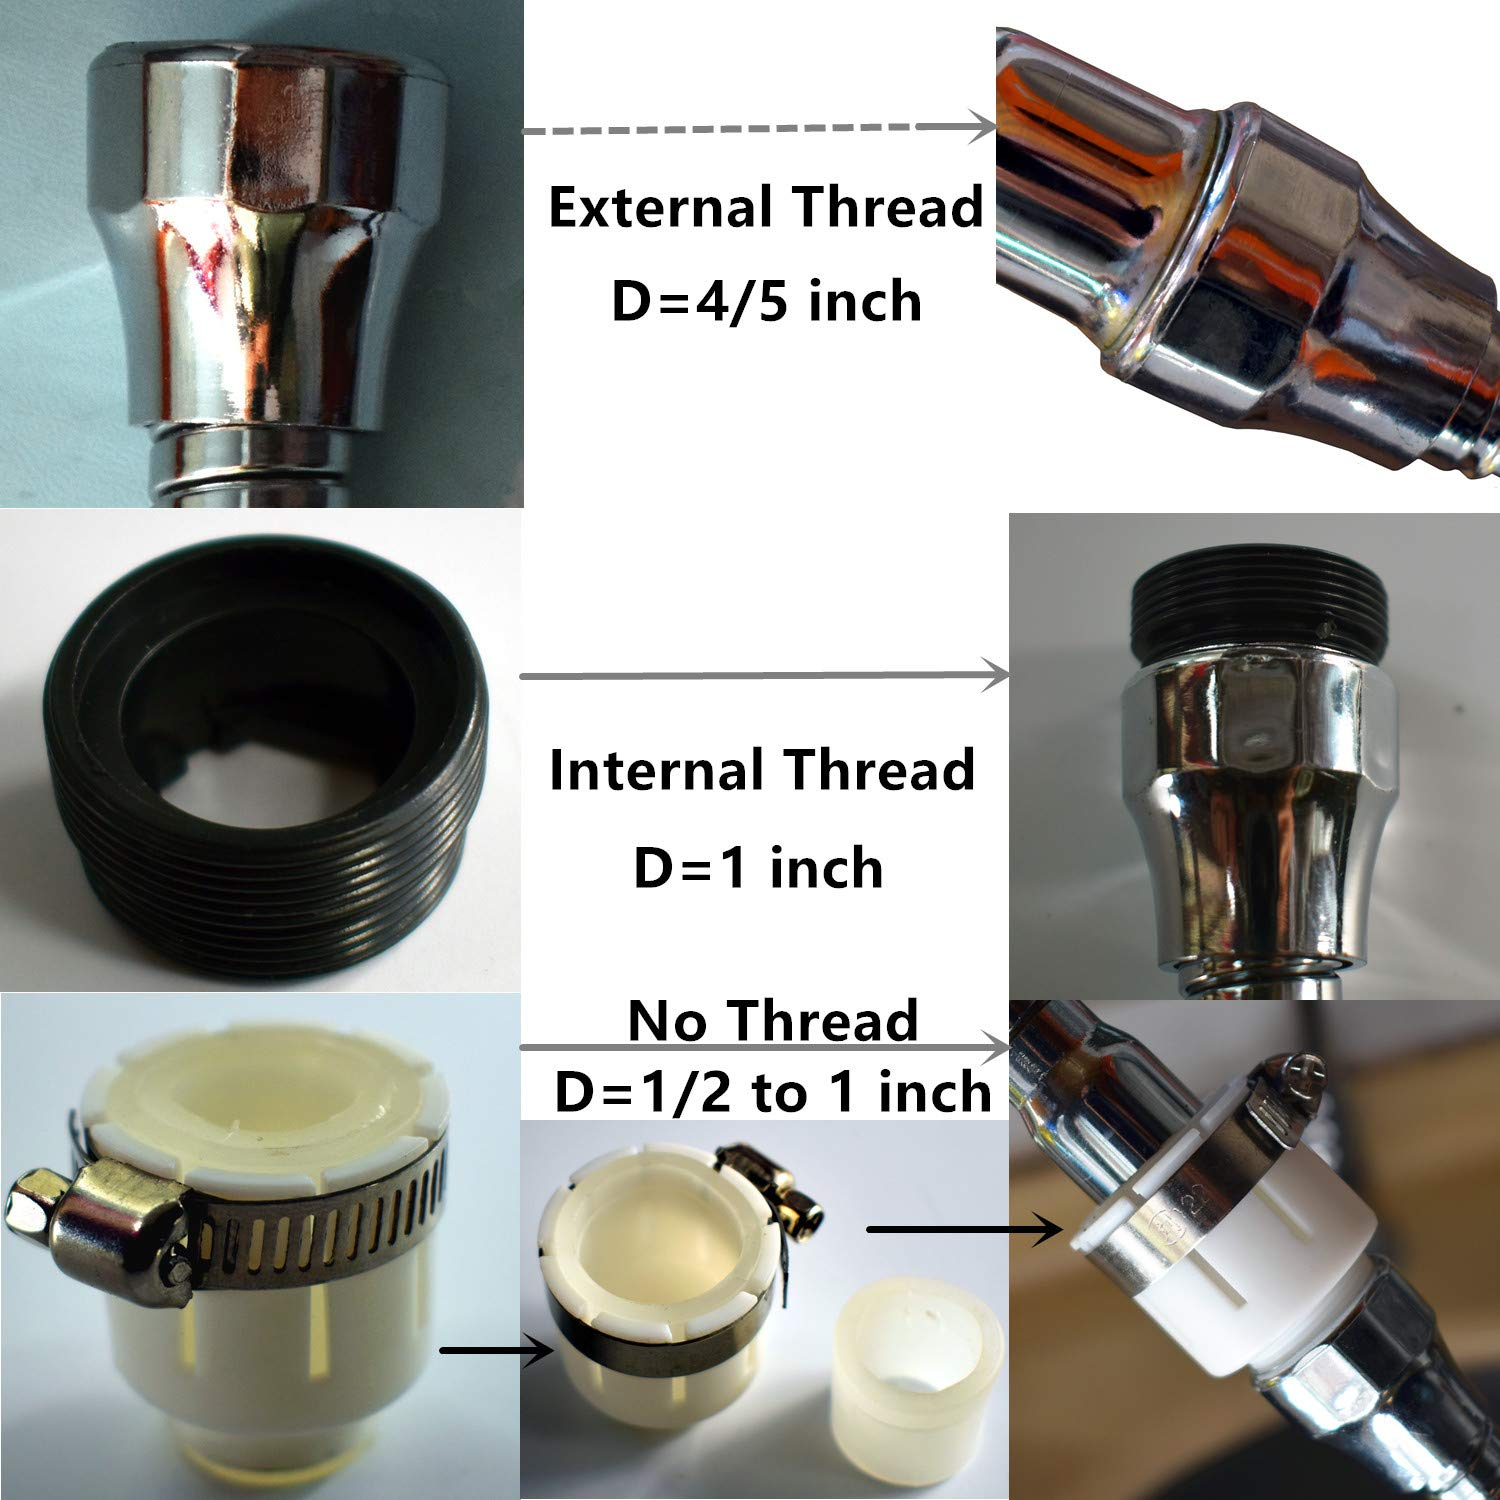 Faucet Sprayer head Attachment Flexible Tap Extension Aerator 360 Degree ABS For Kitchen Sink Cold Hot Water (silver)